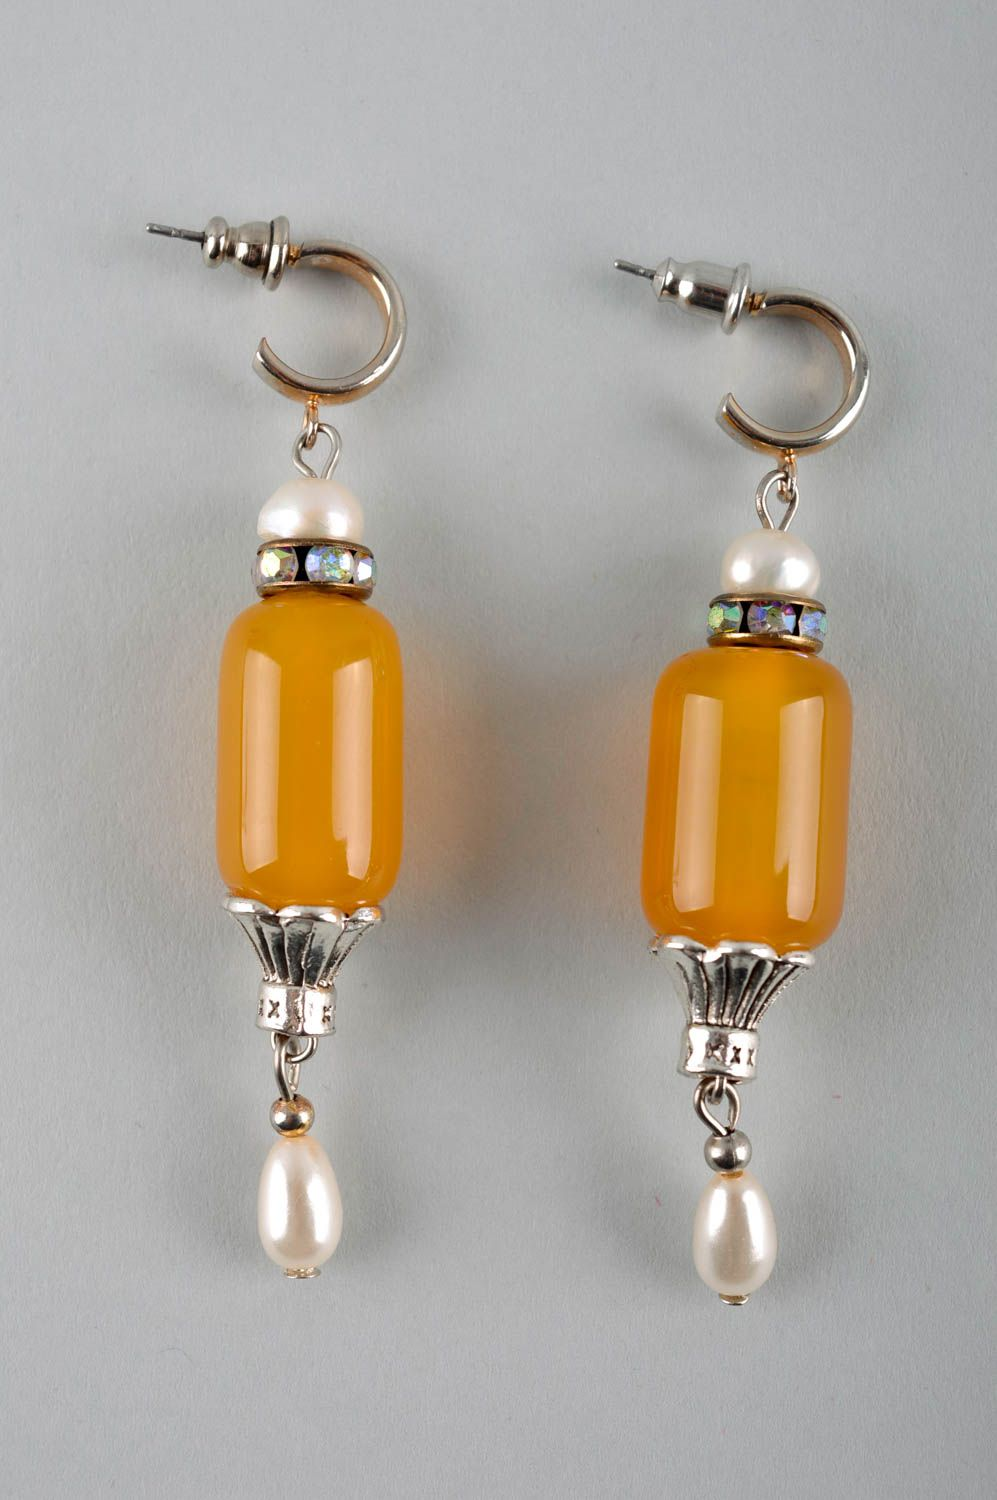 Handmade designer earrings cute earrings with cornelian earrings with charms photo 3